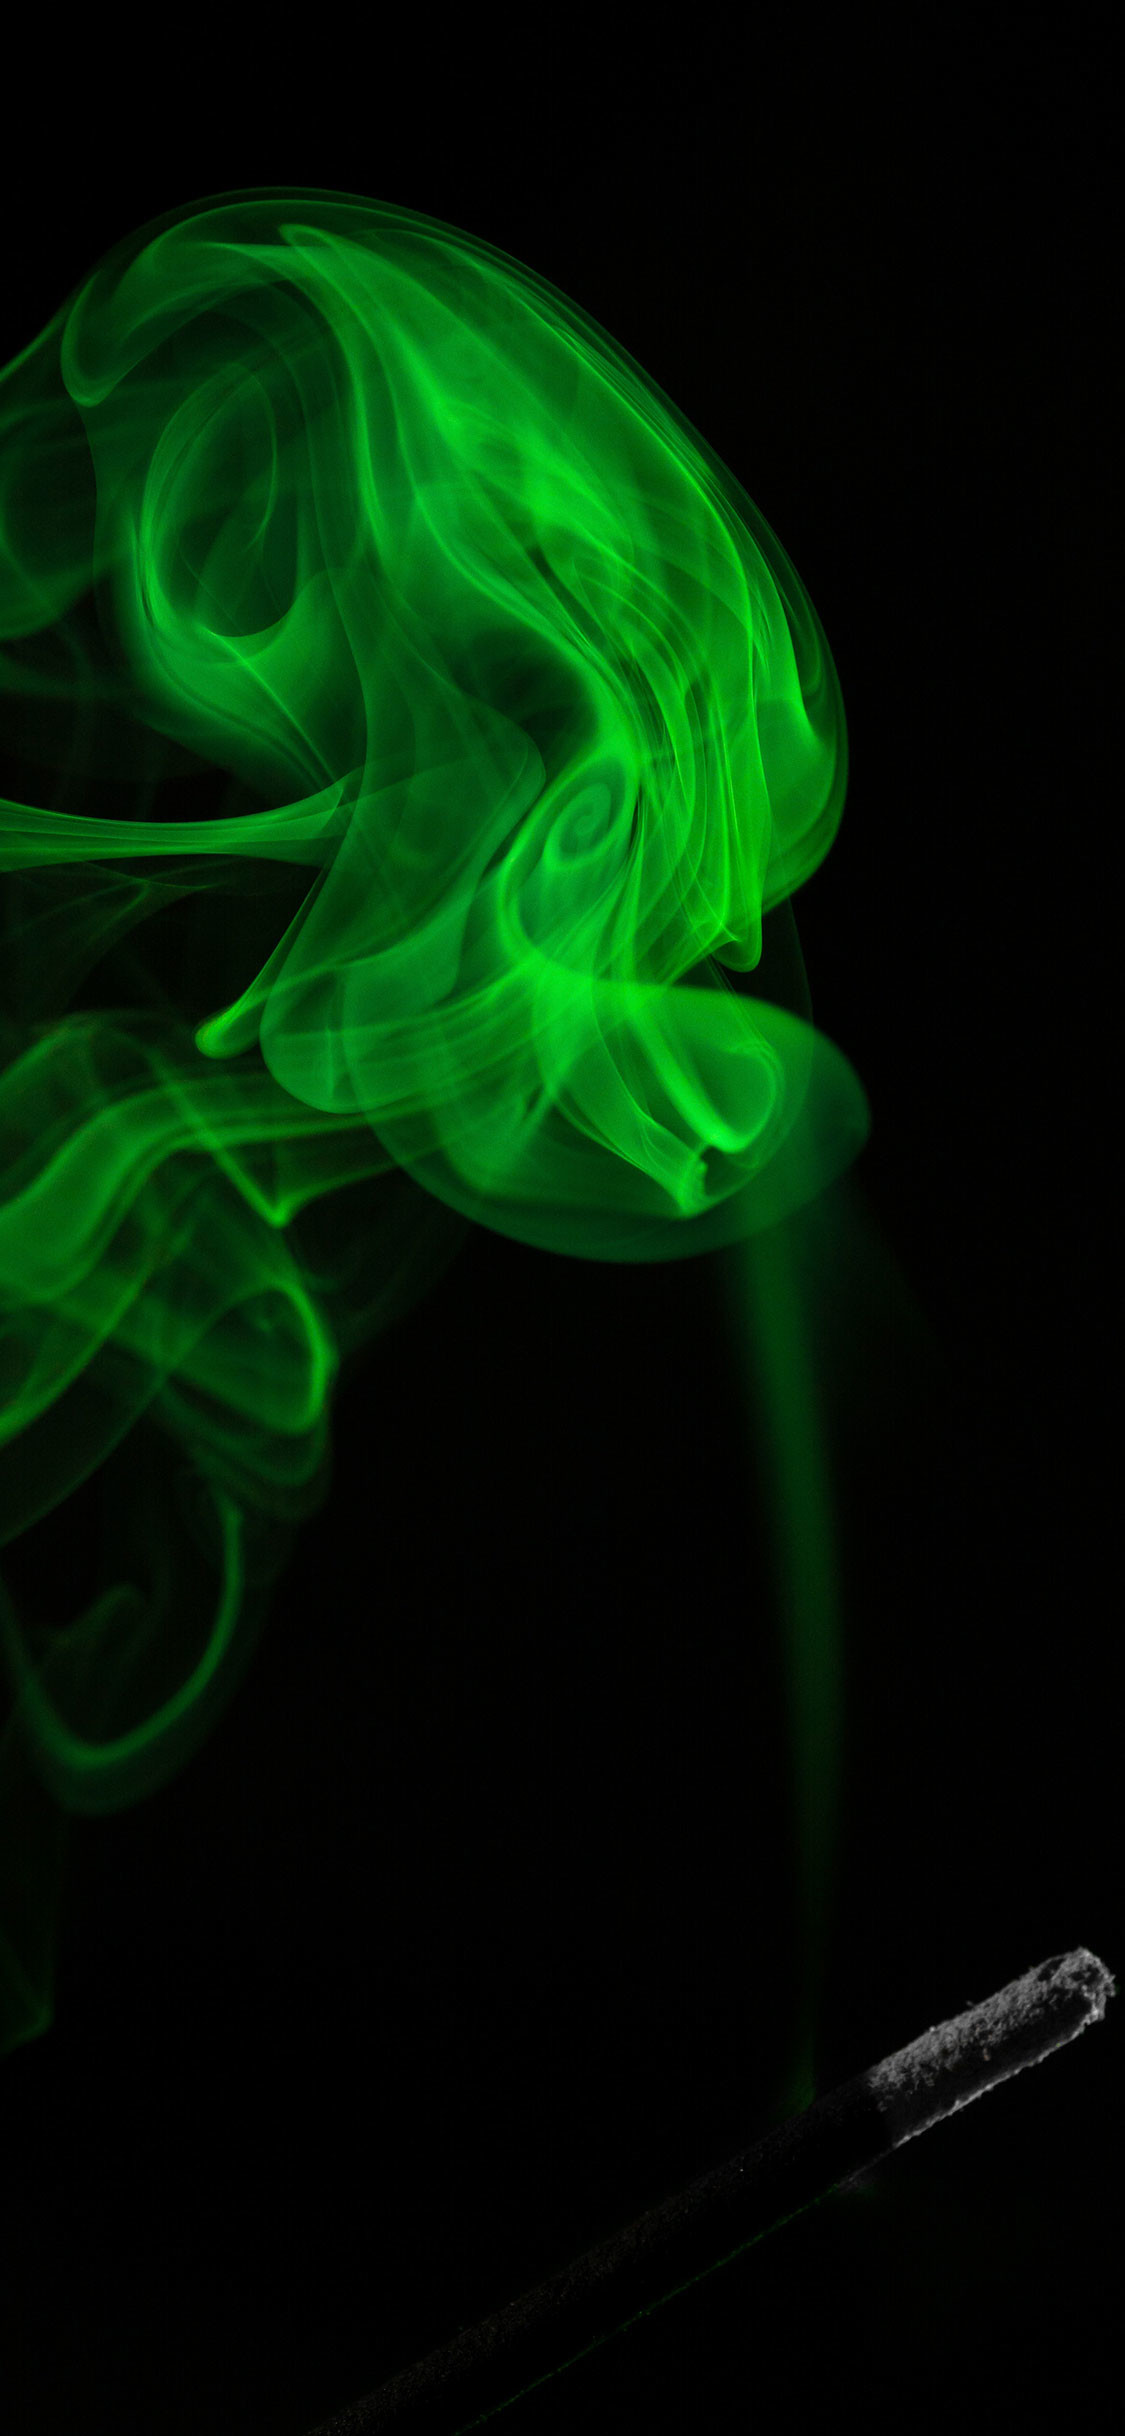 Green Smoke Wallpaper 62 Pictures